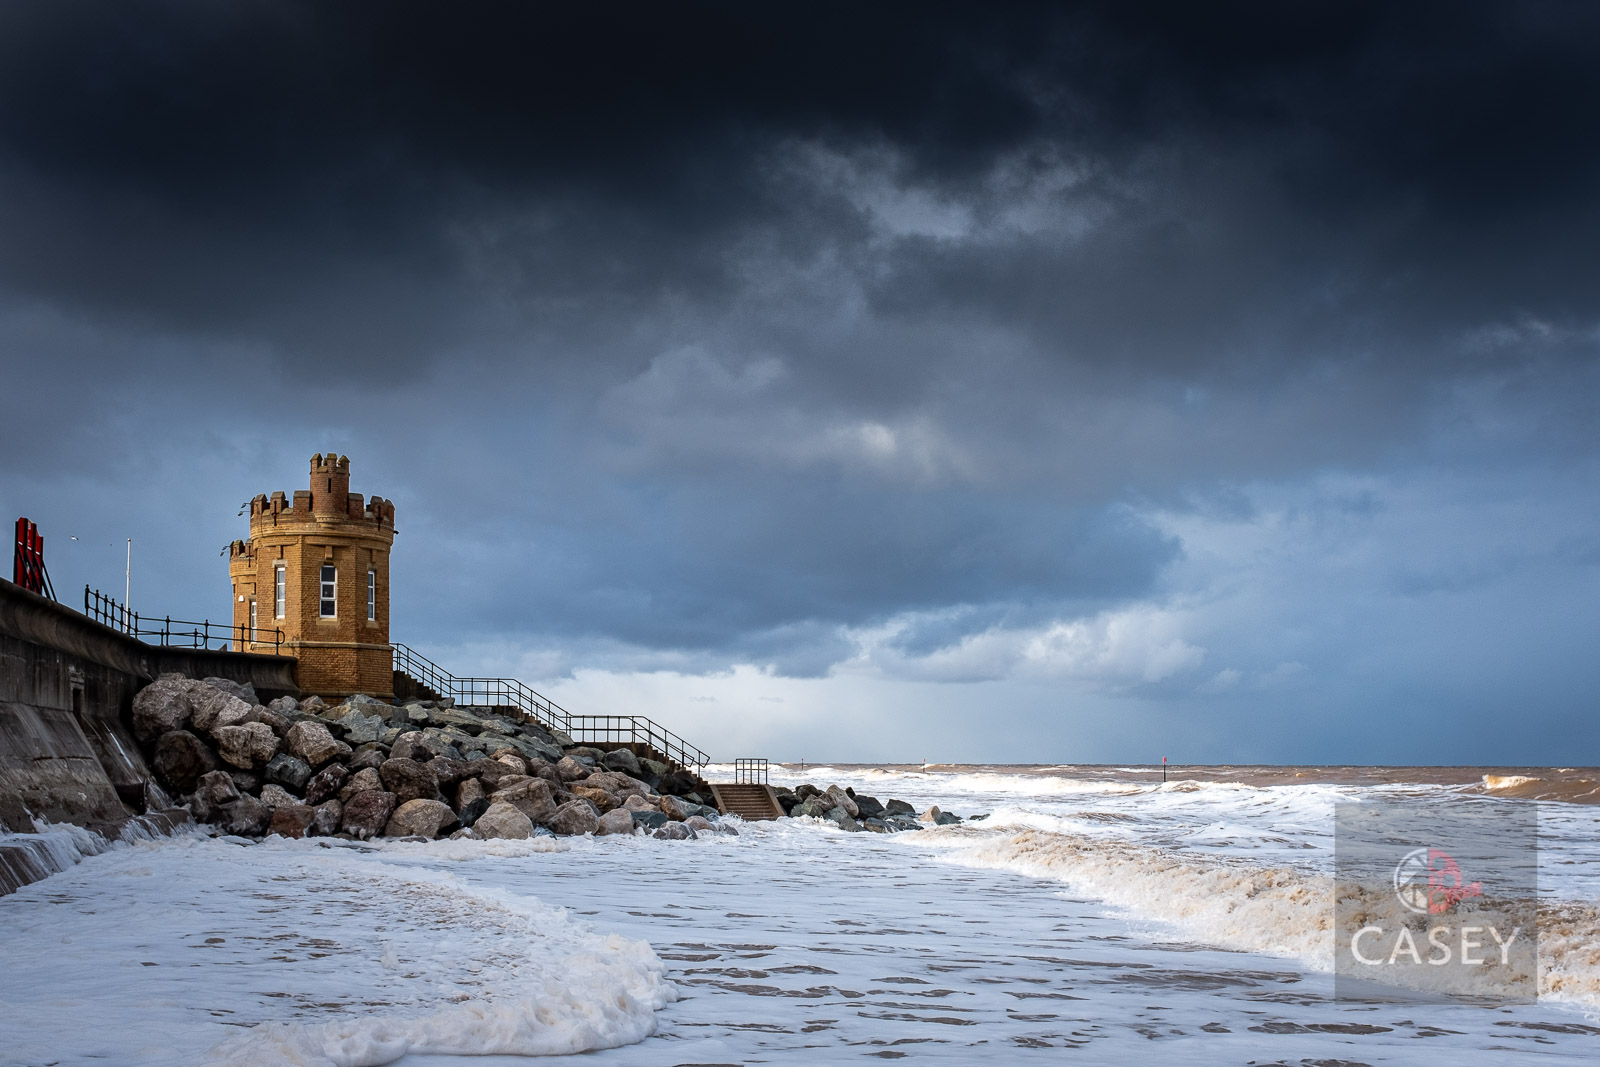 Covid and Withernsea